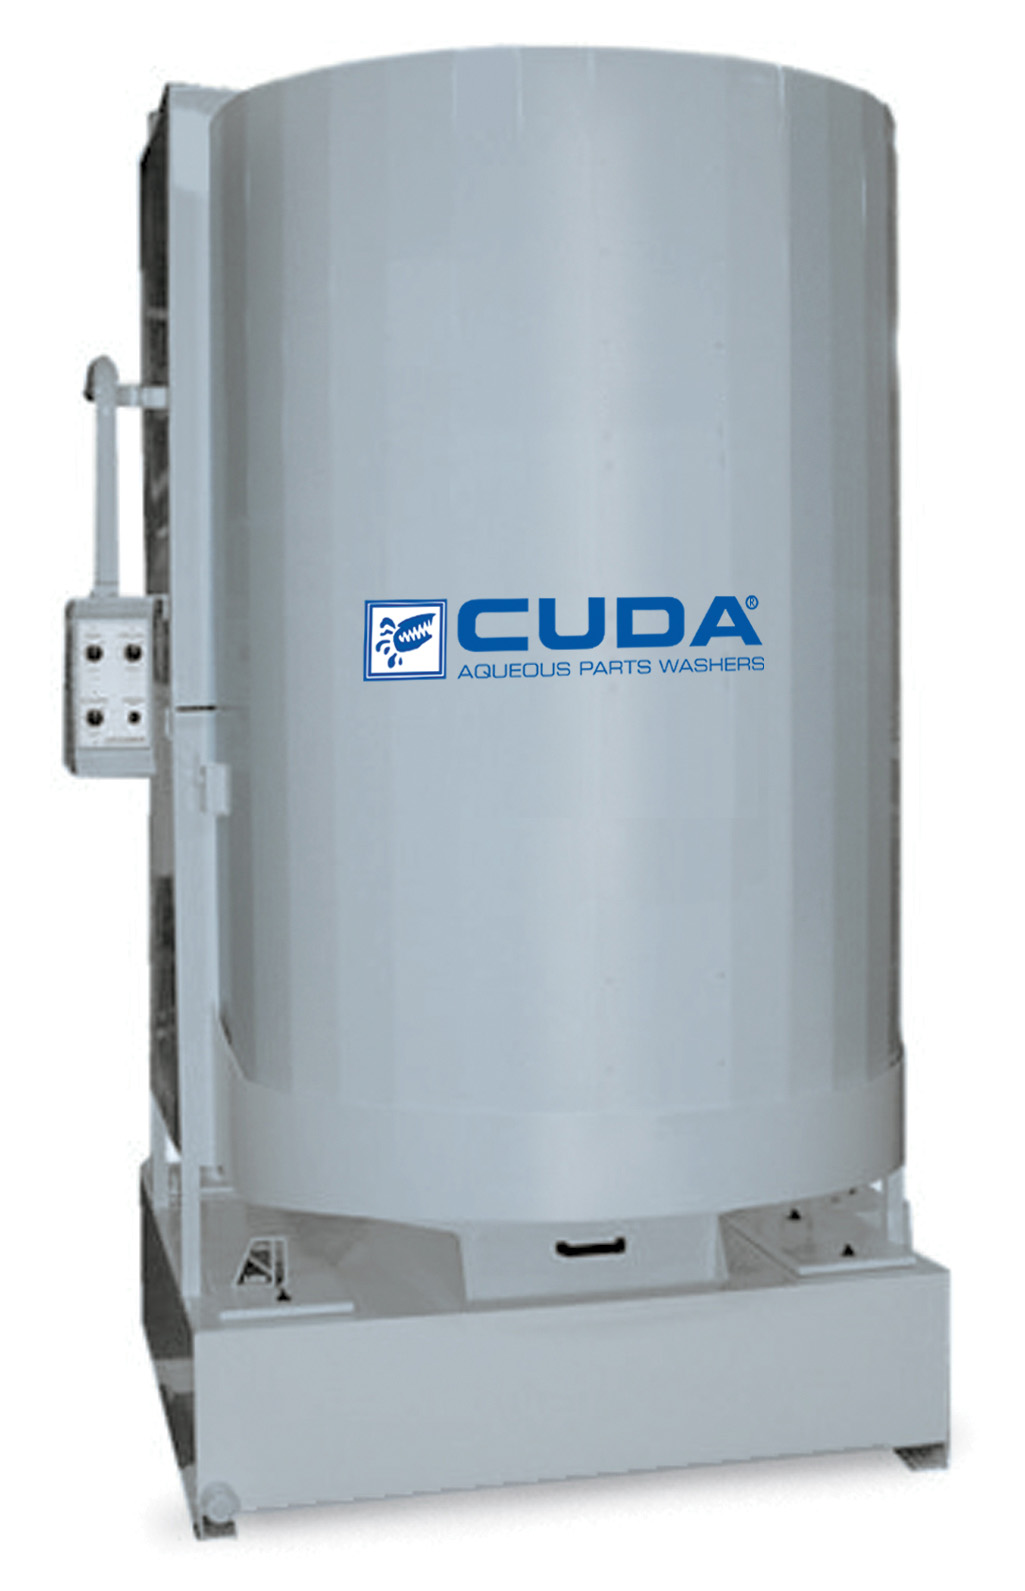 200 GPM @ 50 PSI Cuda Front Load Automatic Parts Washer H2O-4860